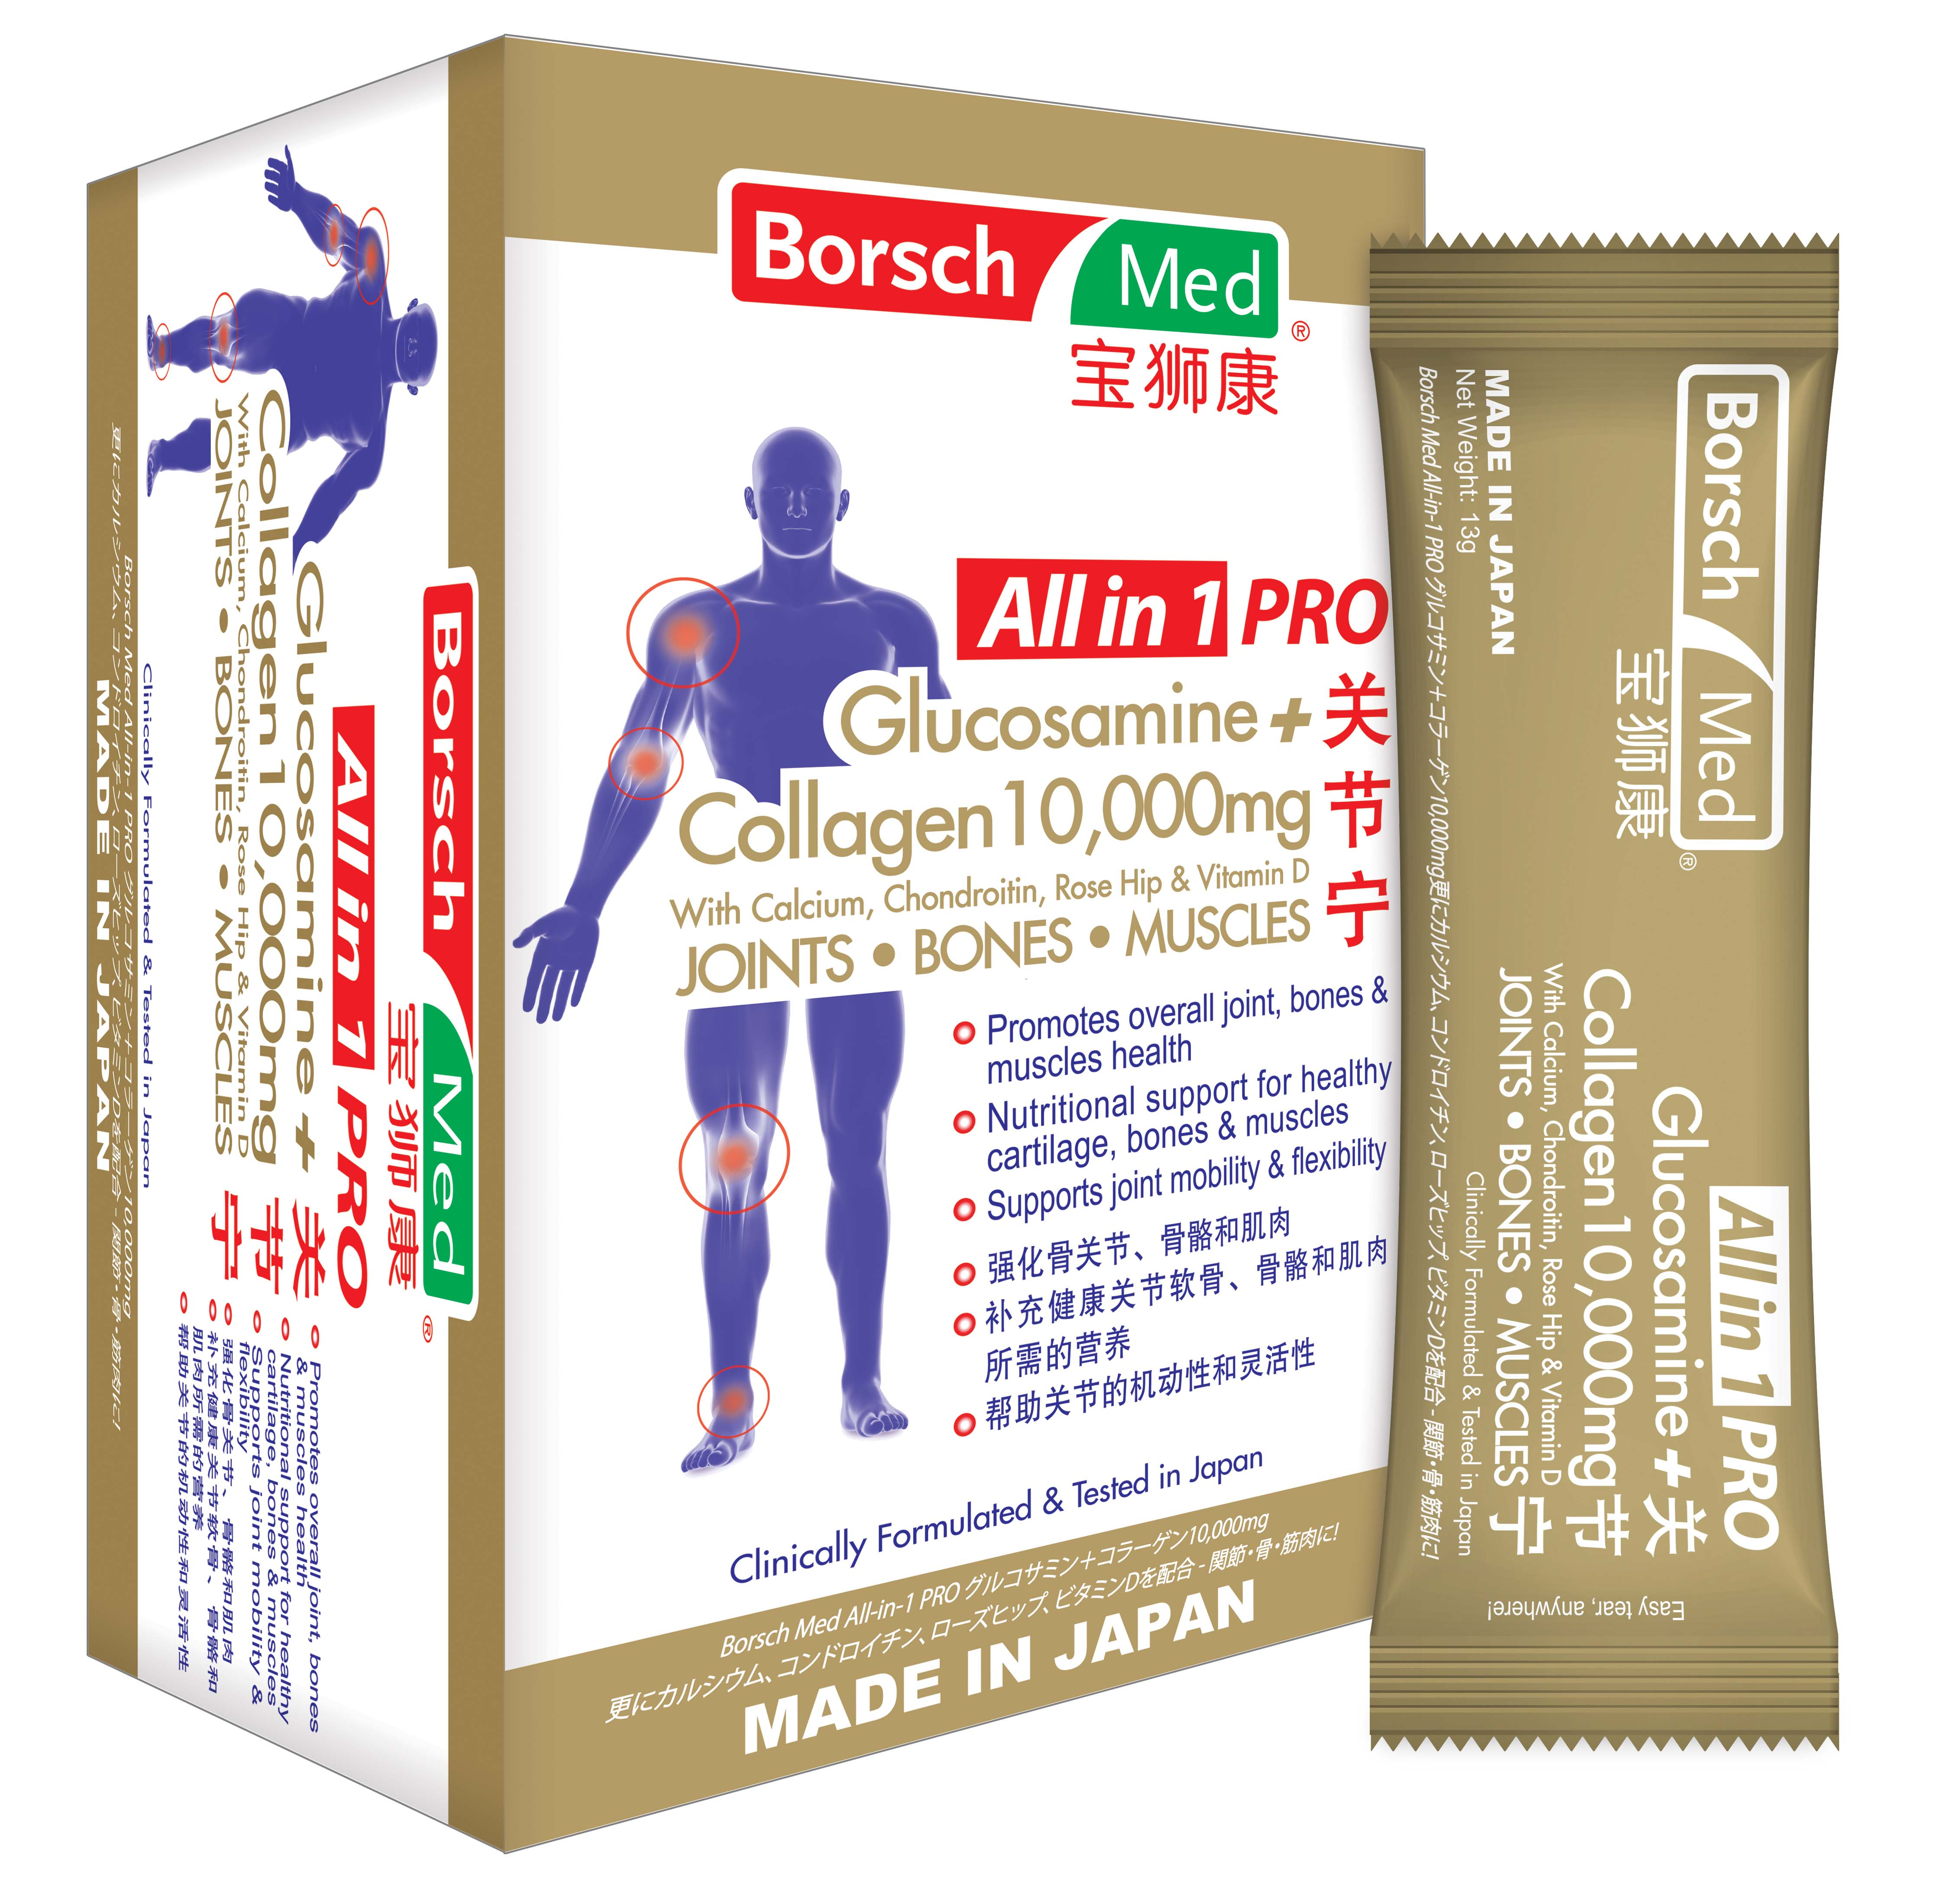 All In 1 Pro Glucosamine Plus Collagen 10,000mg With Calcium, Chondroitin, Rose Hip & Vitamin D ( 关节宁).